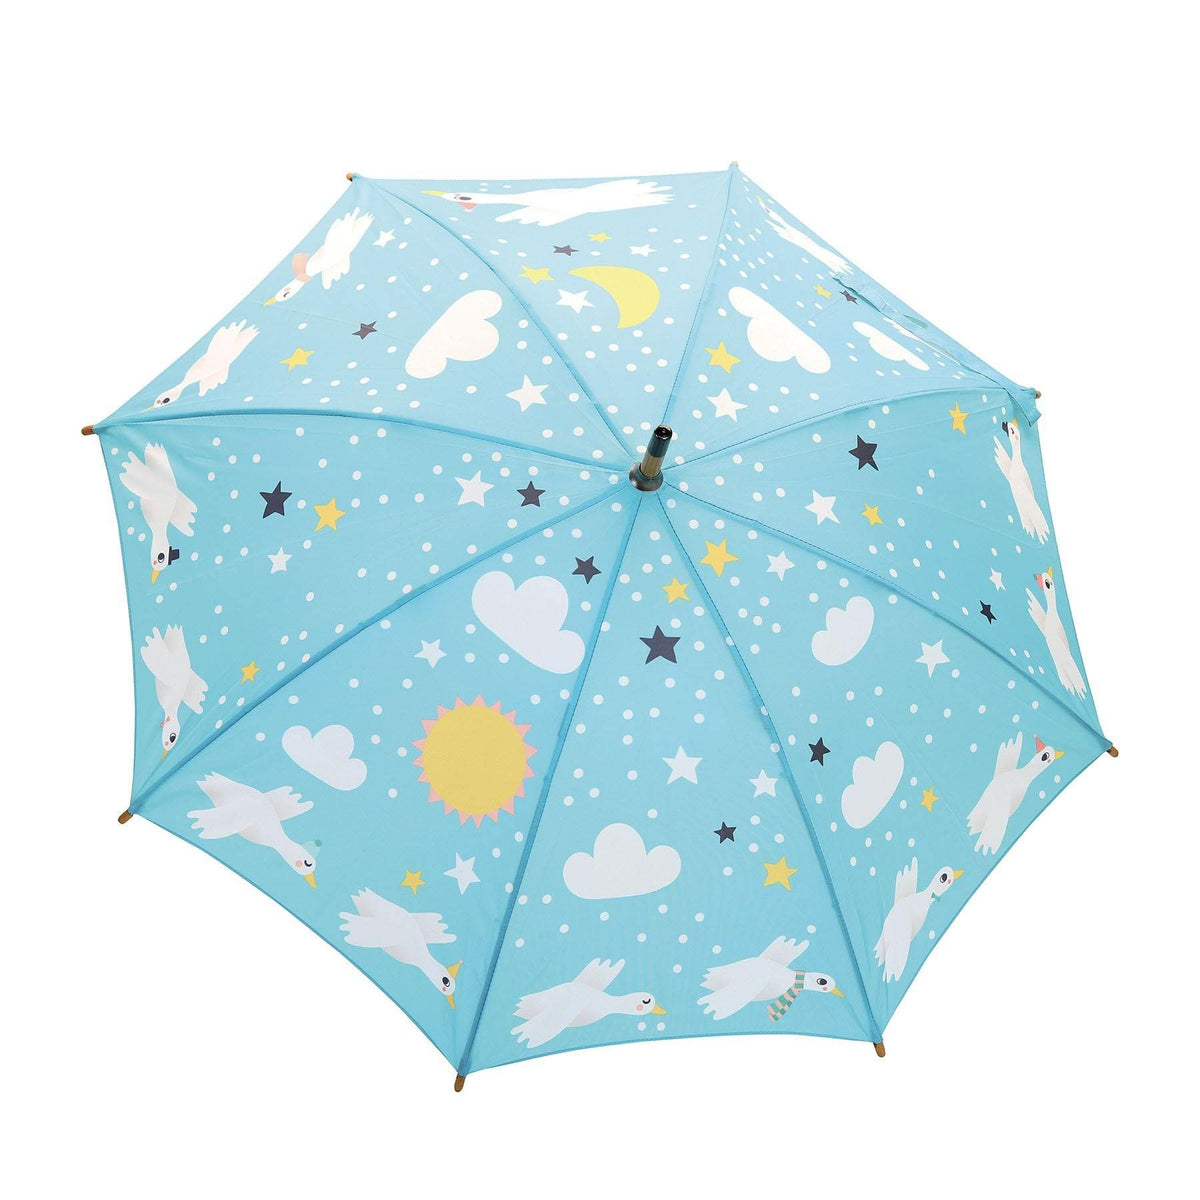 Goose umbrella by Michelle Carlslund-Kids Umbrella-Vilac-Totem Store